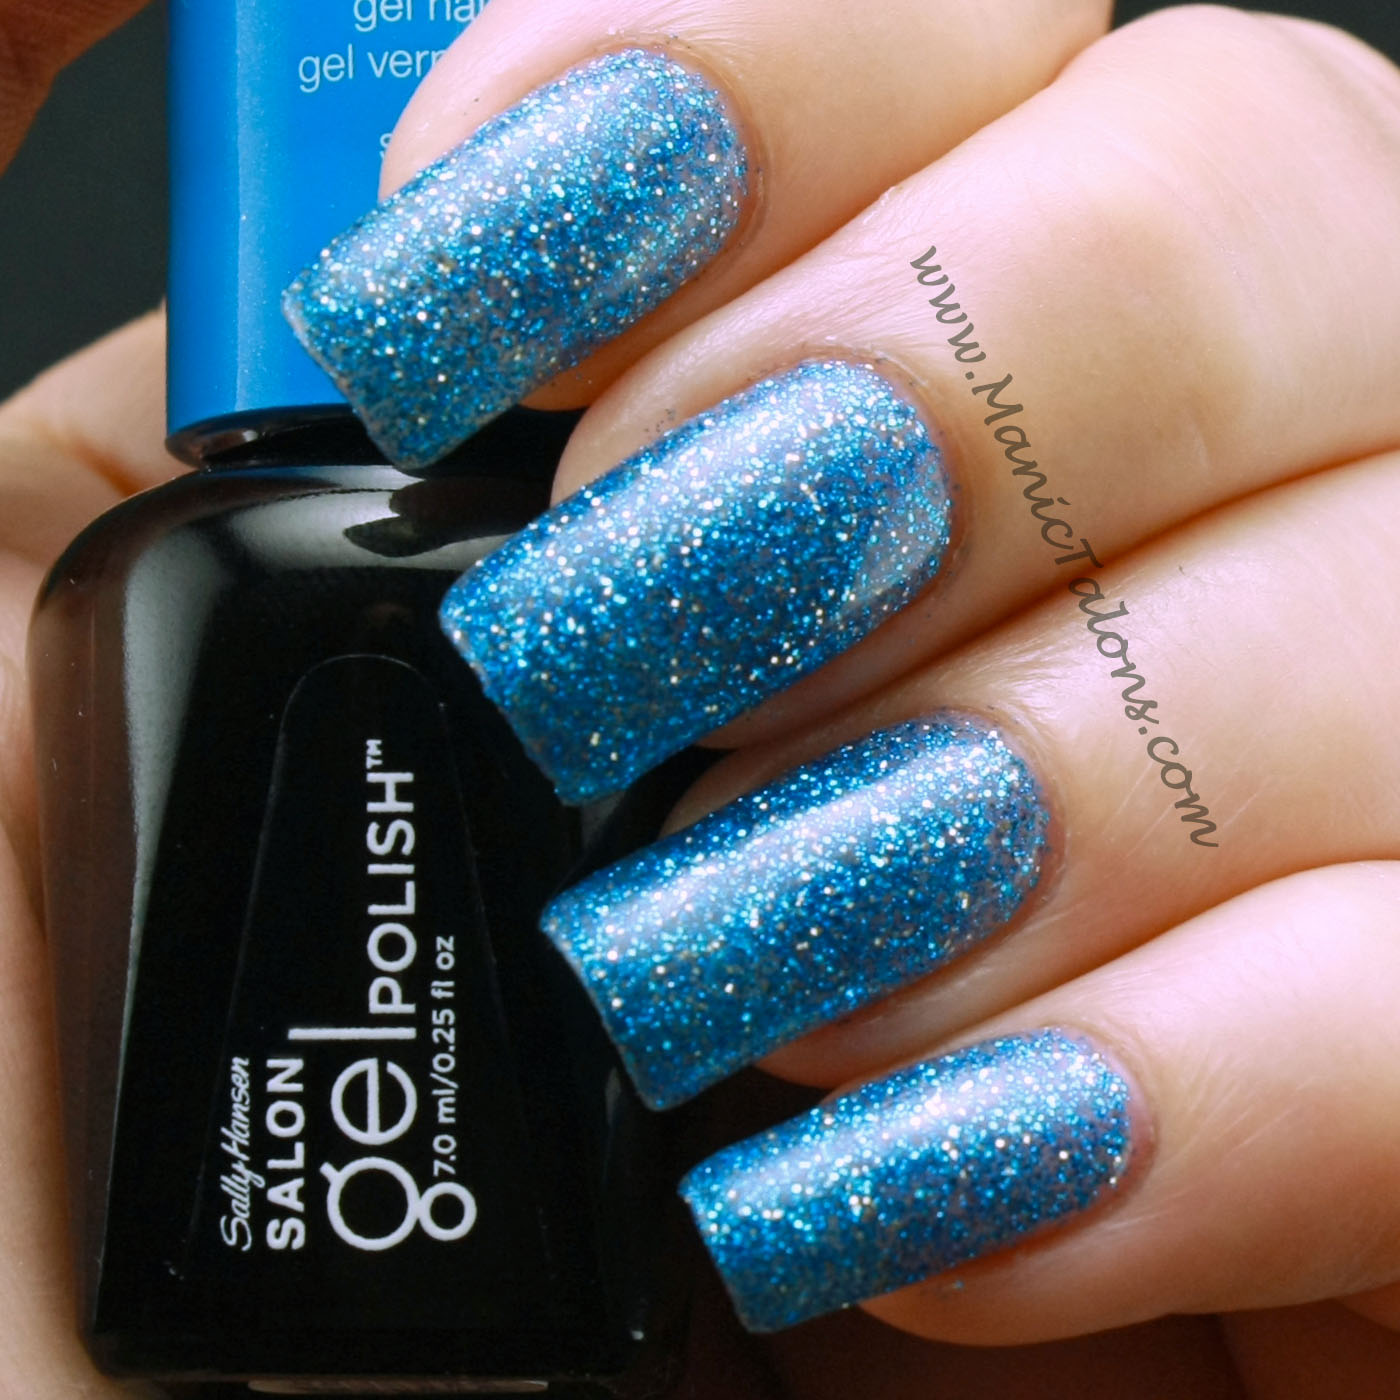 Manic Talons Nail Design: Sally Hansen Gel Color Limited Edition ...